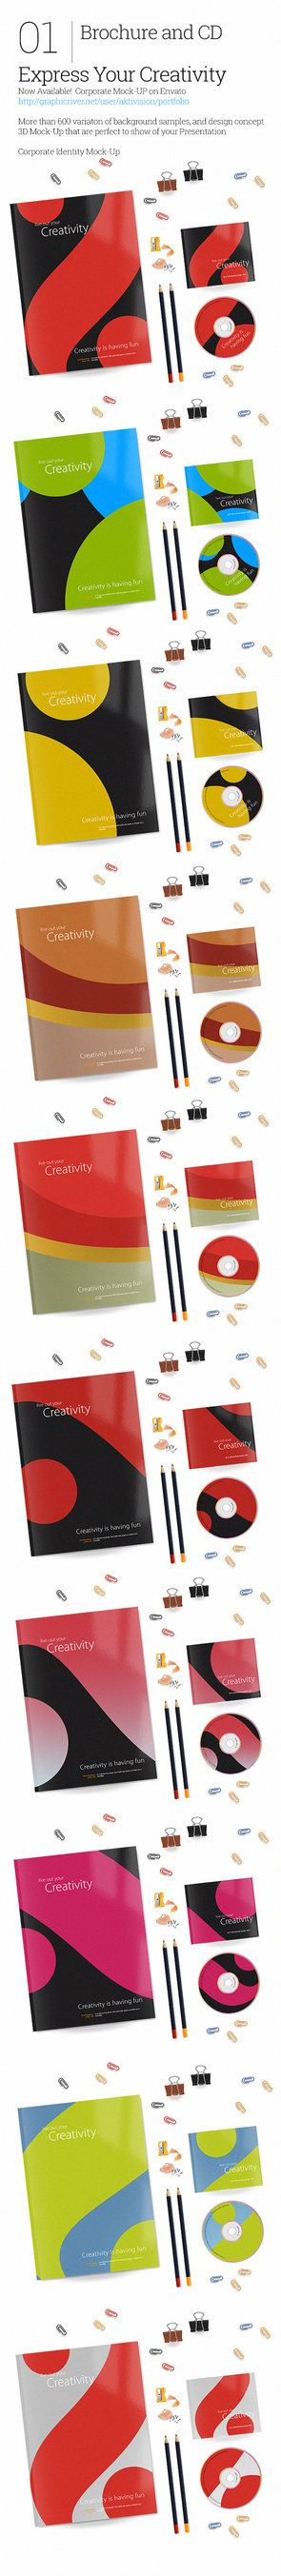 01 Brochure and CD 11 copy by aktivision2015 on DeviantArt